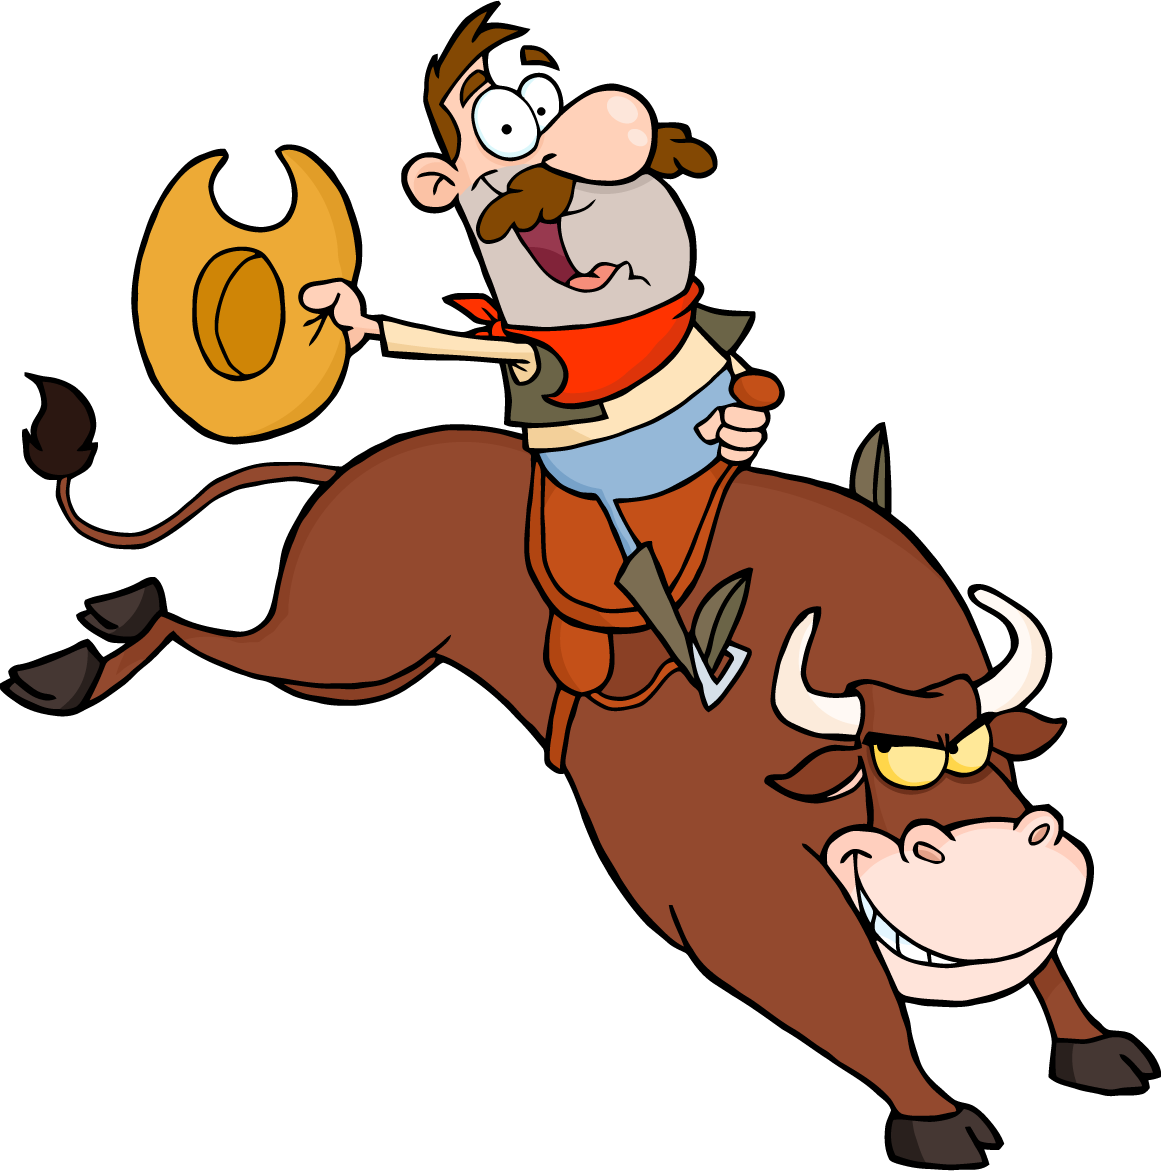 Rodeo Clip Art Borders   Clipart library - Free Clipart Images - Rodeo PNG HD Free